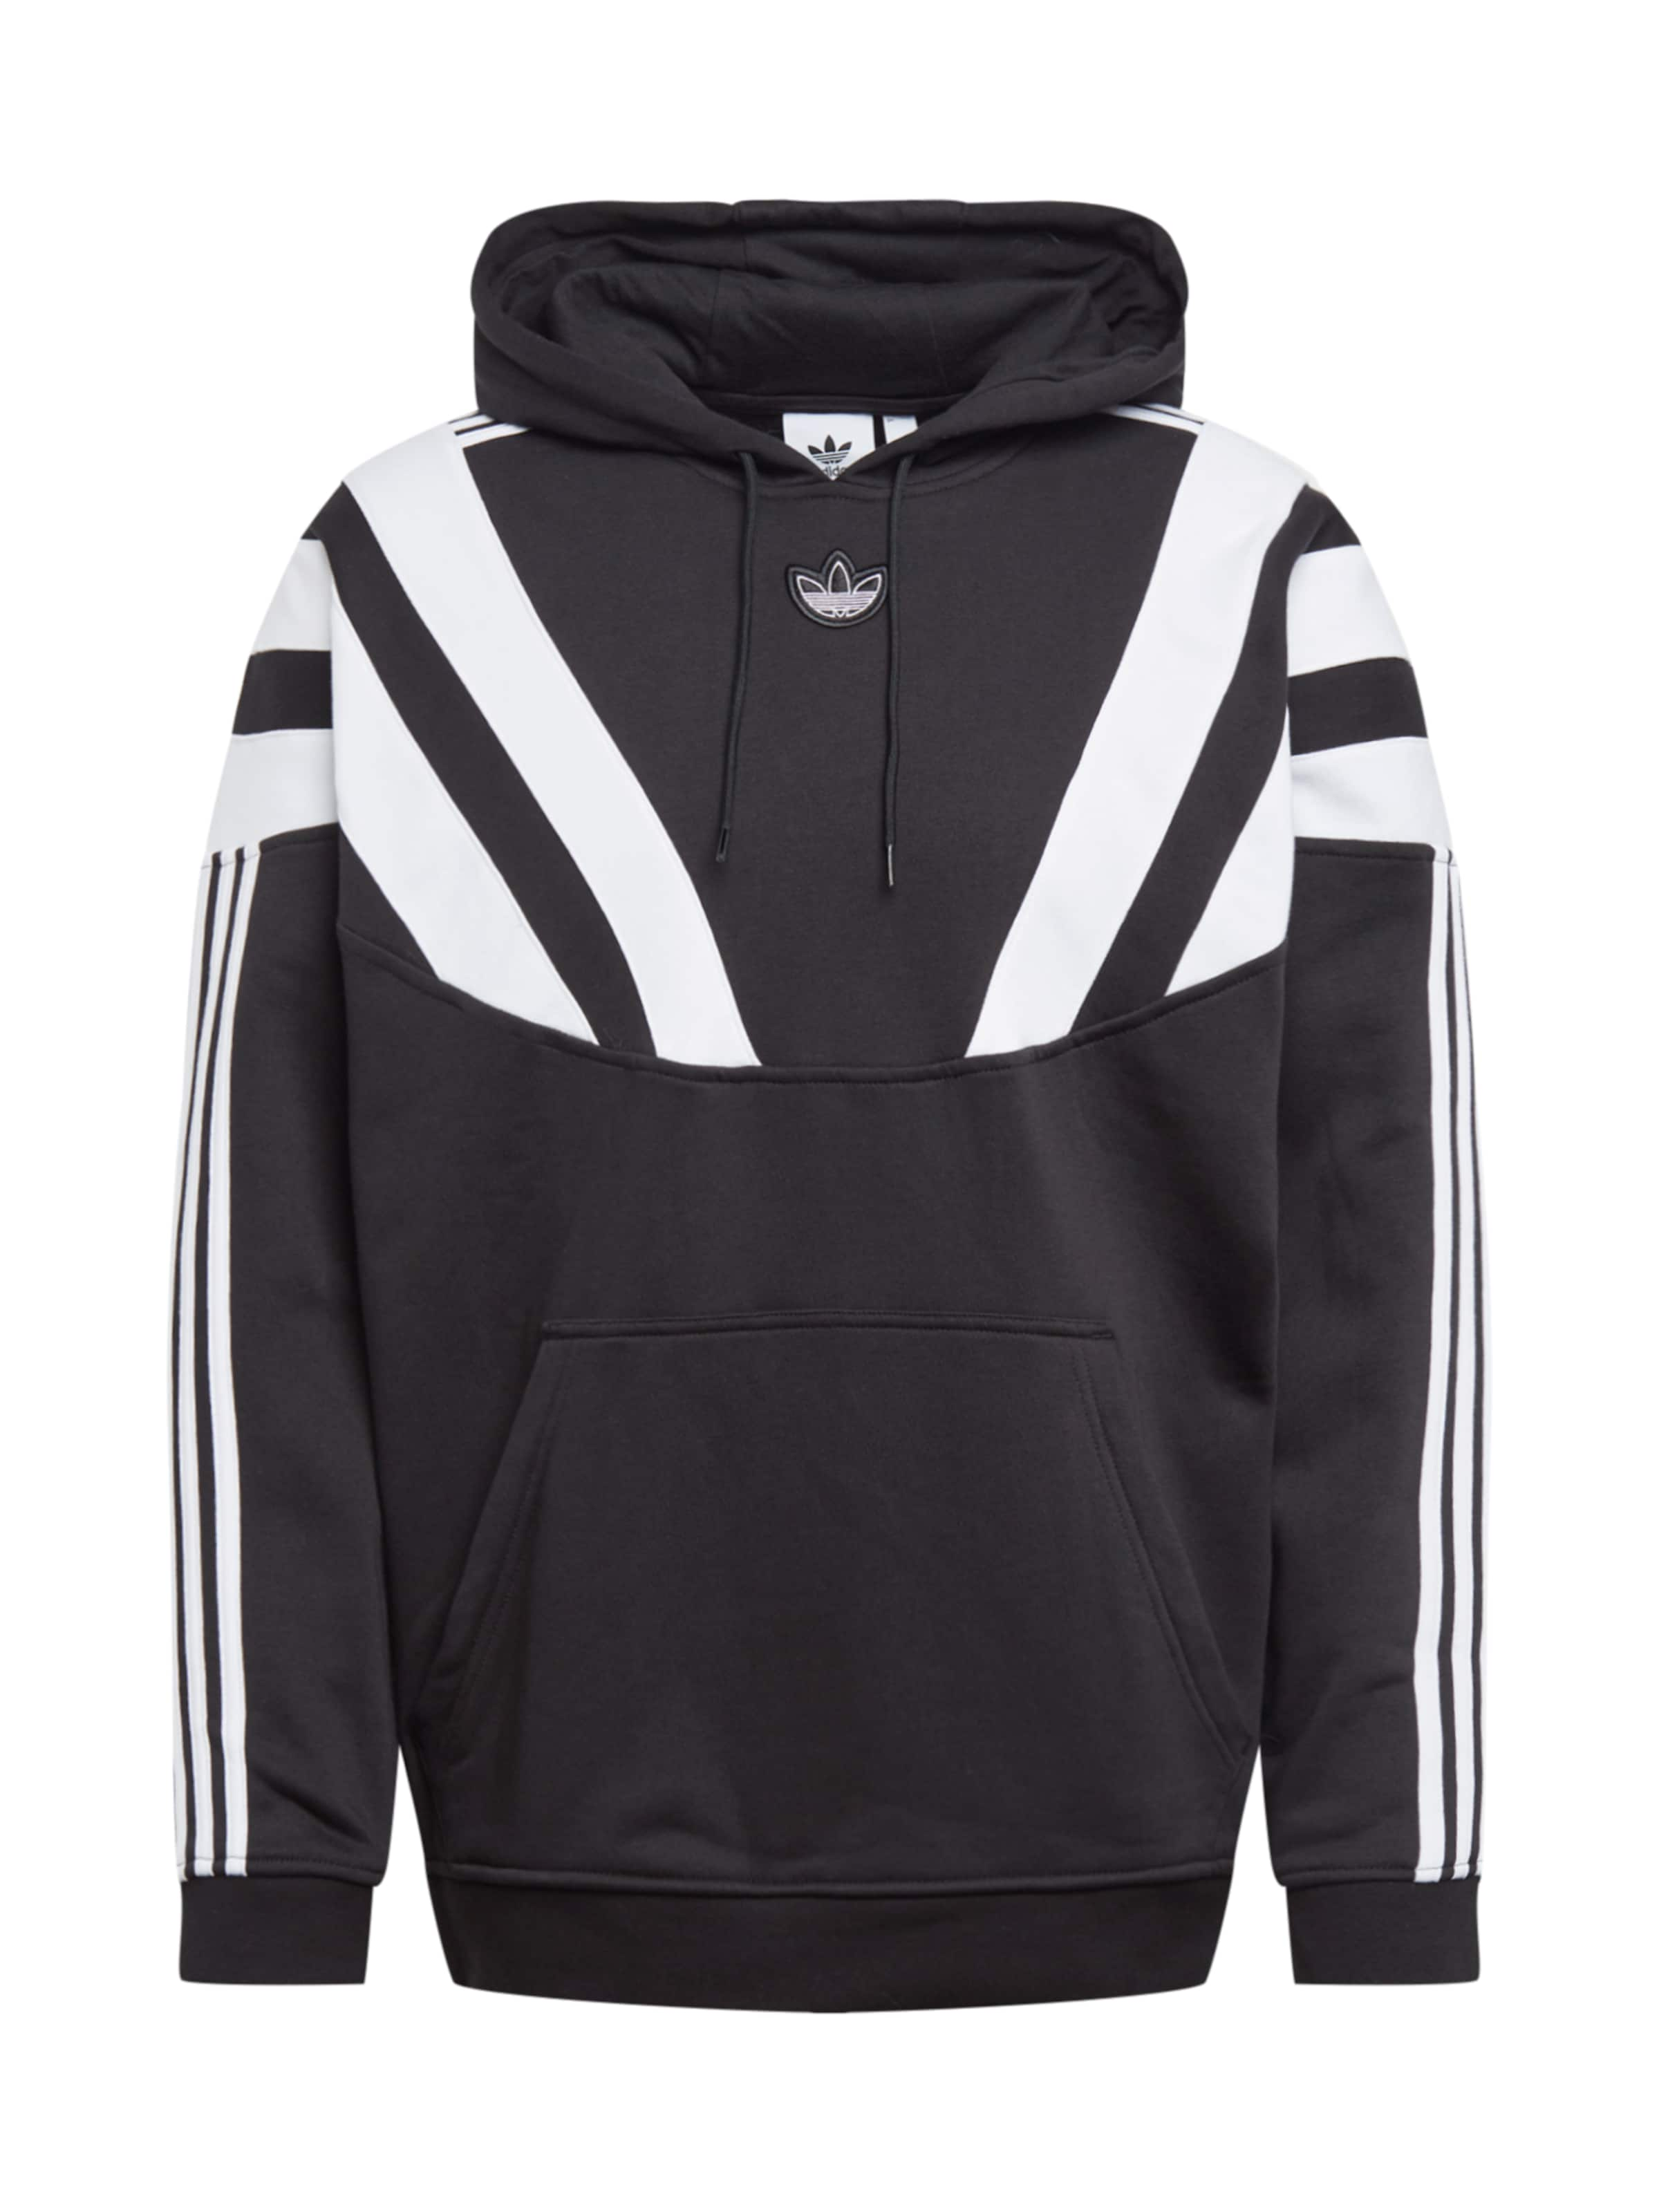 Adidas Originals 'blnt 96' Sweat shirt NoirBlanc En 8n0OvmNw